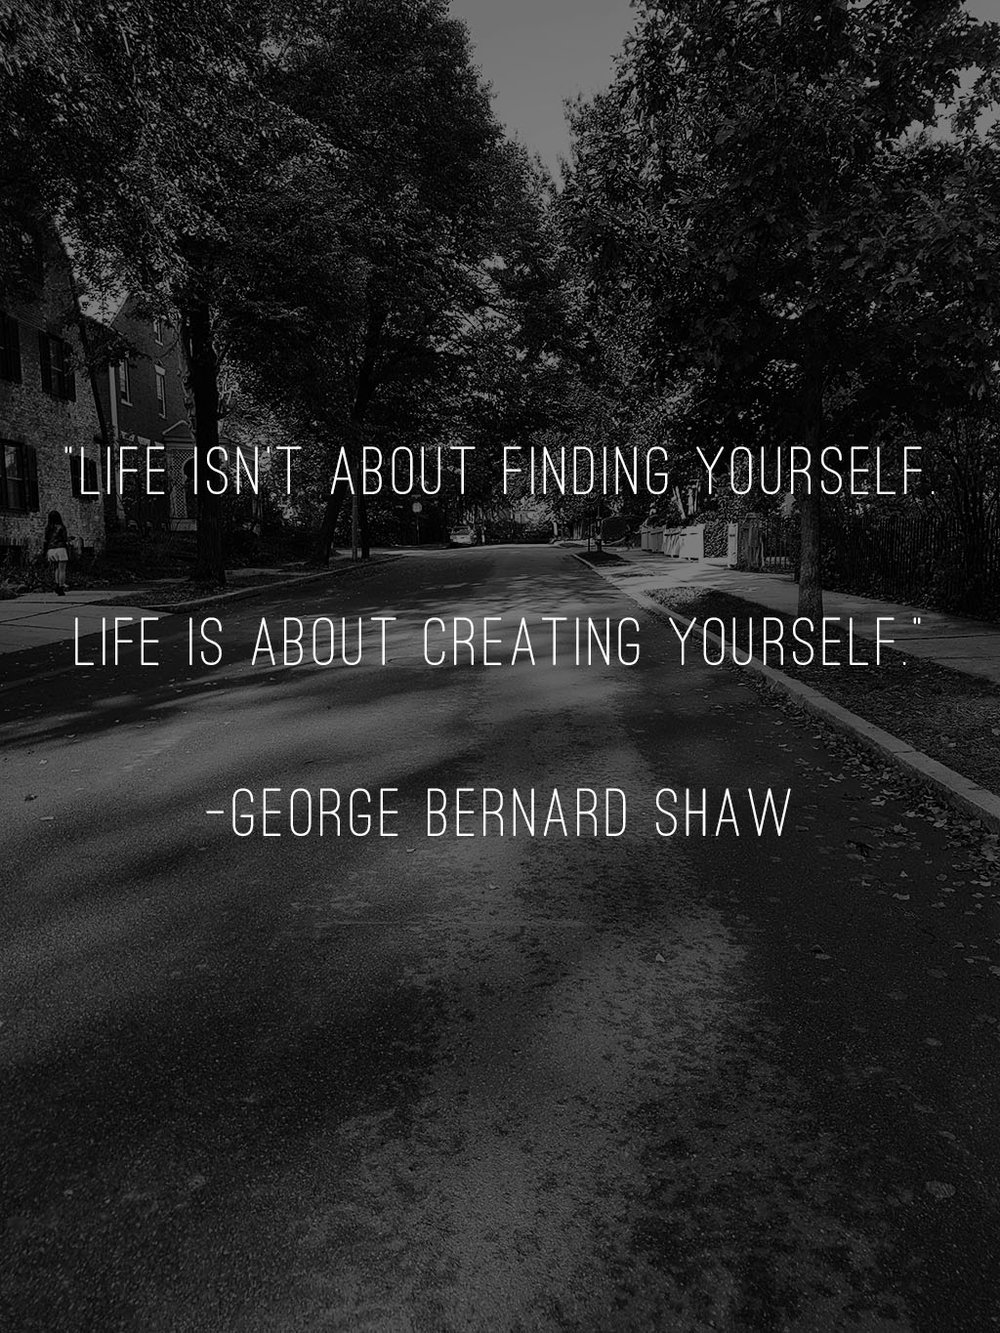 Monday motivation featuring George Bernard Shaw